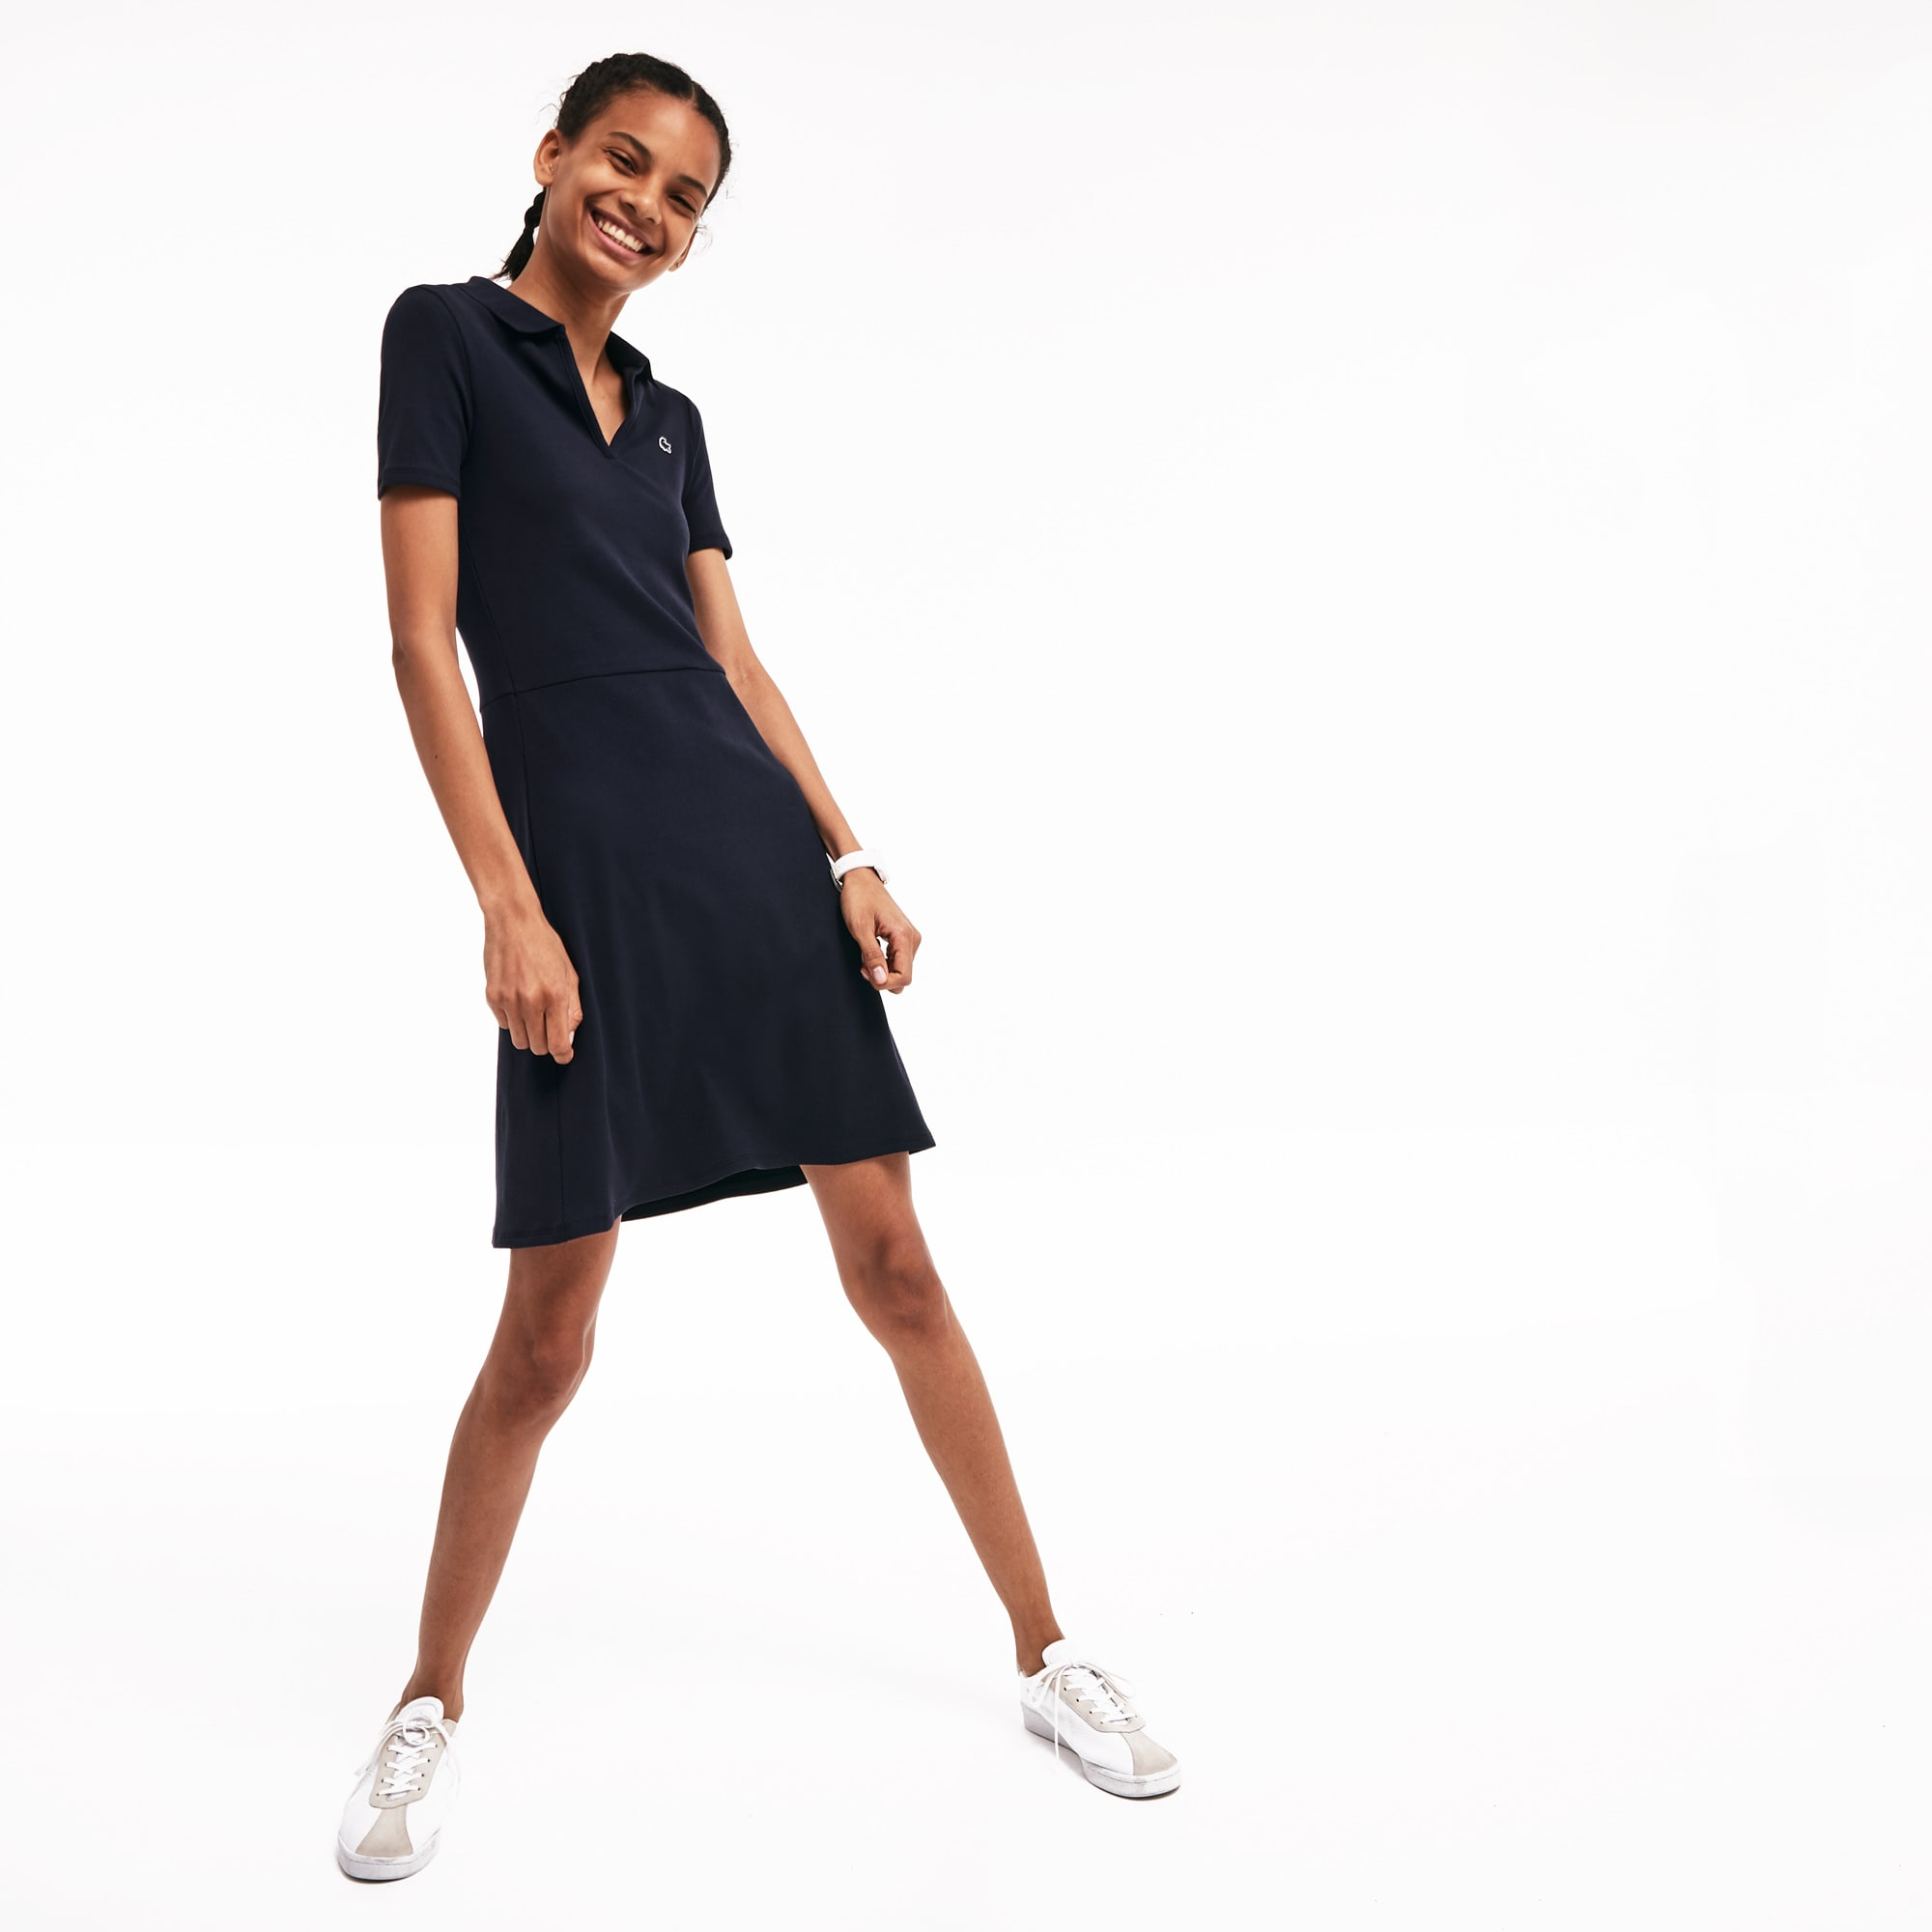 Women's LIVE Cotton Blend Polo Dress